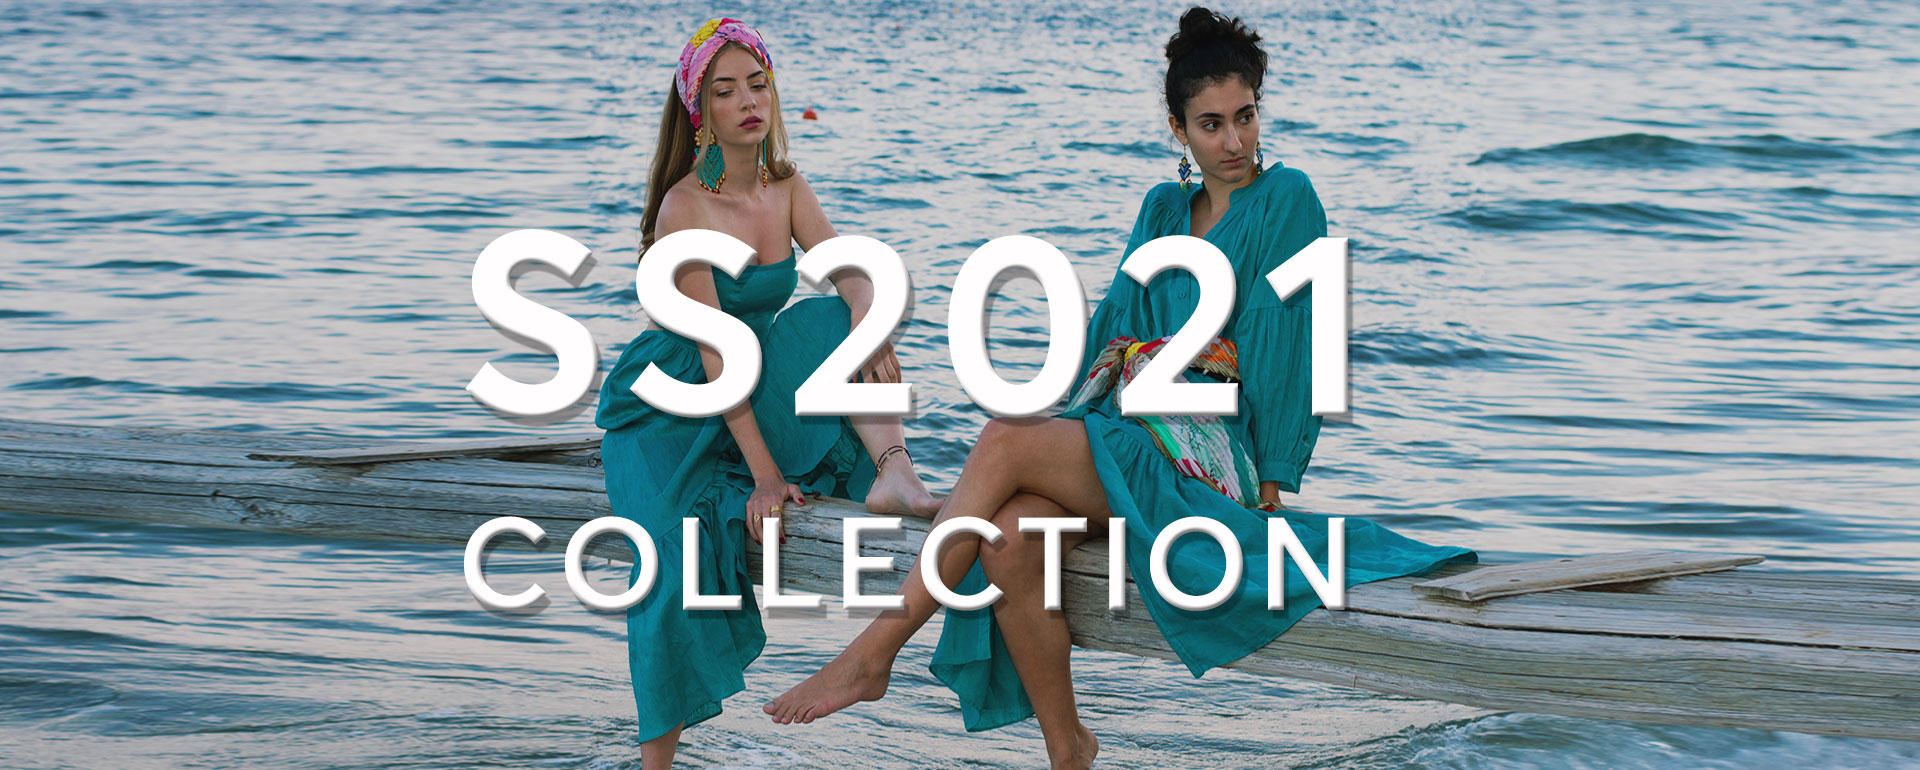 SS2021 COLLECTION2